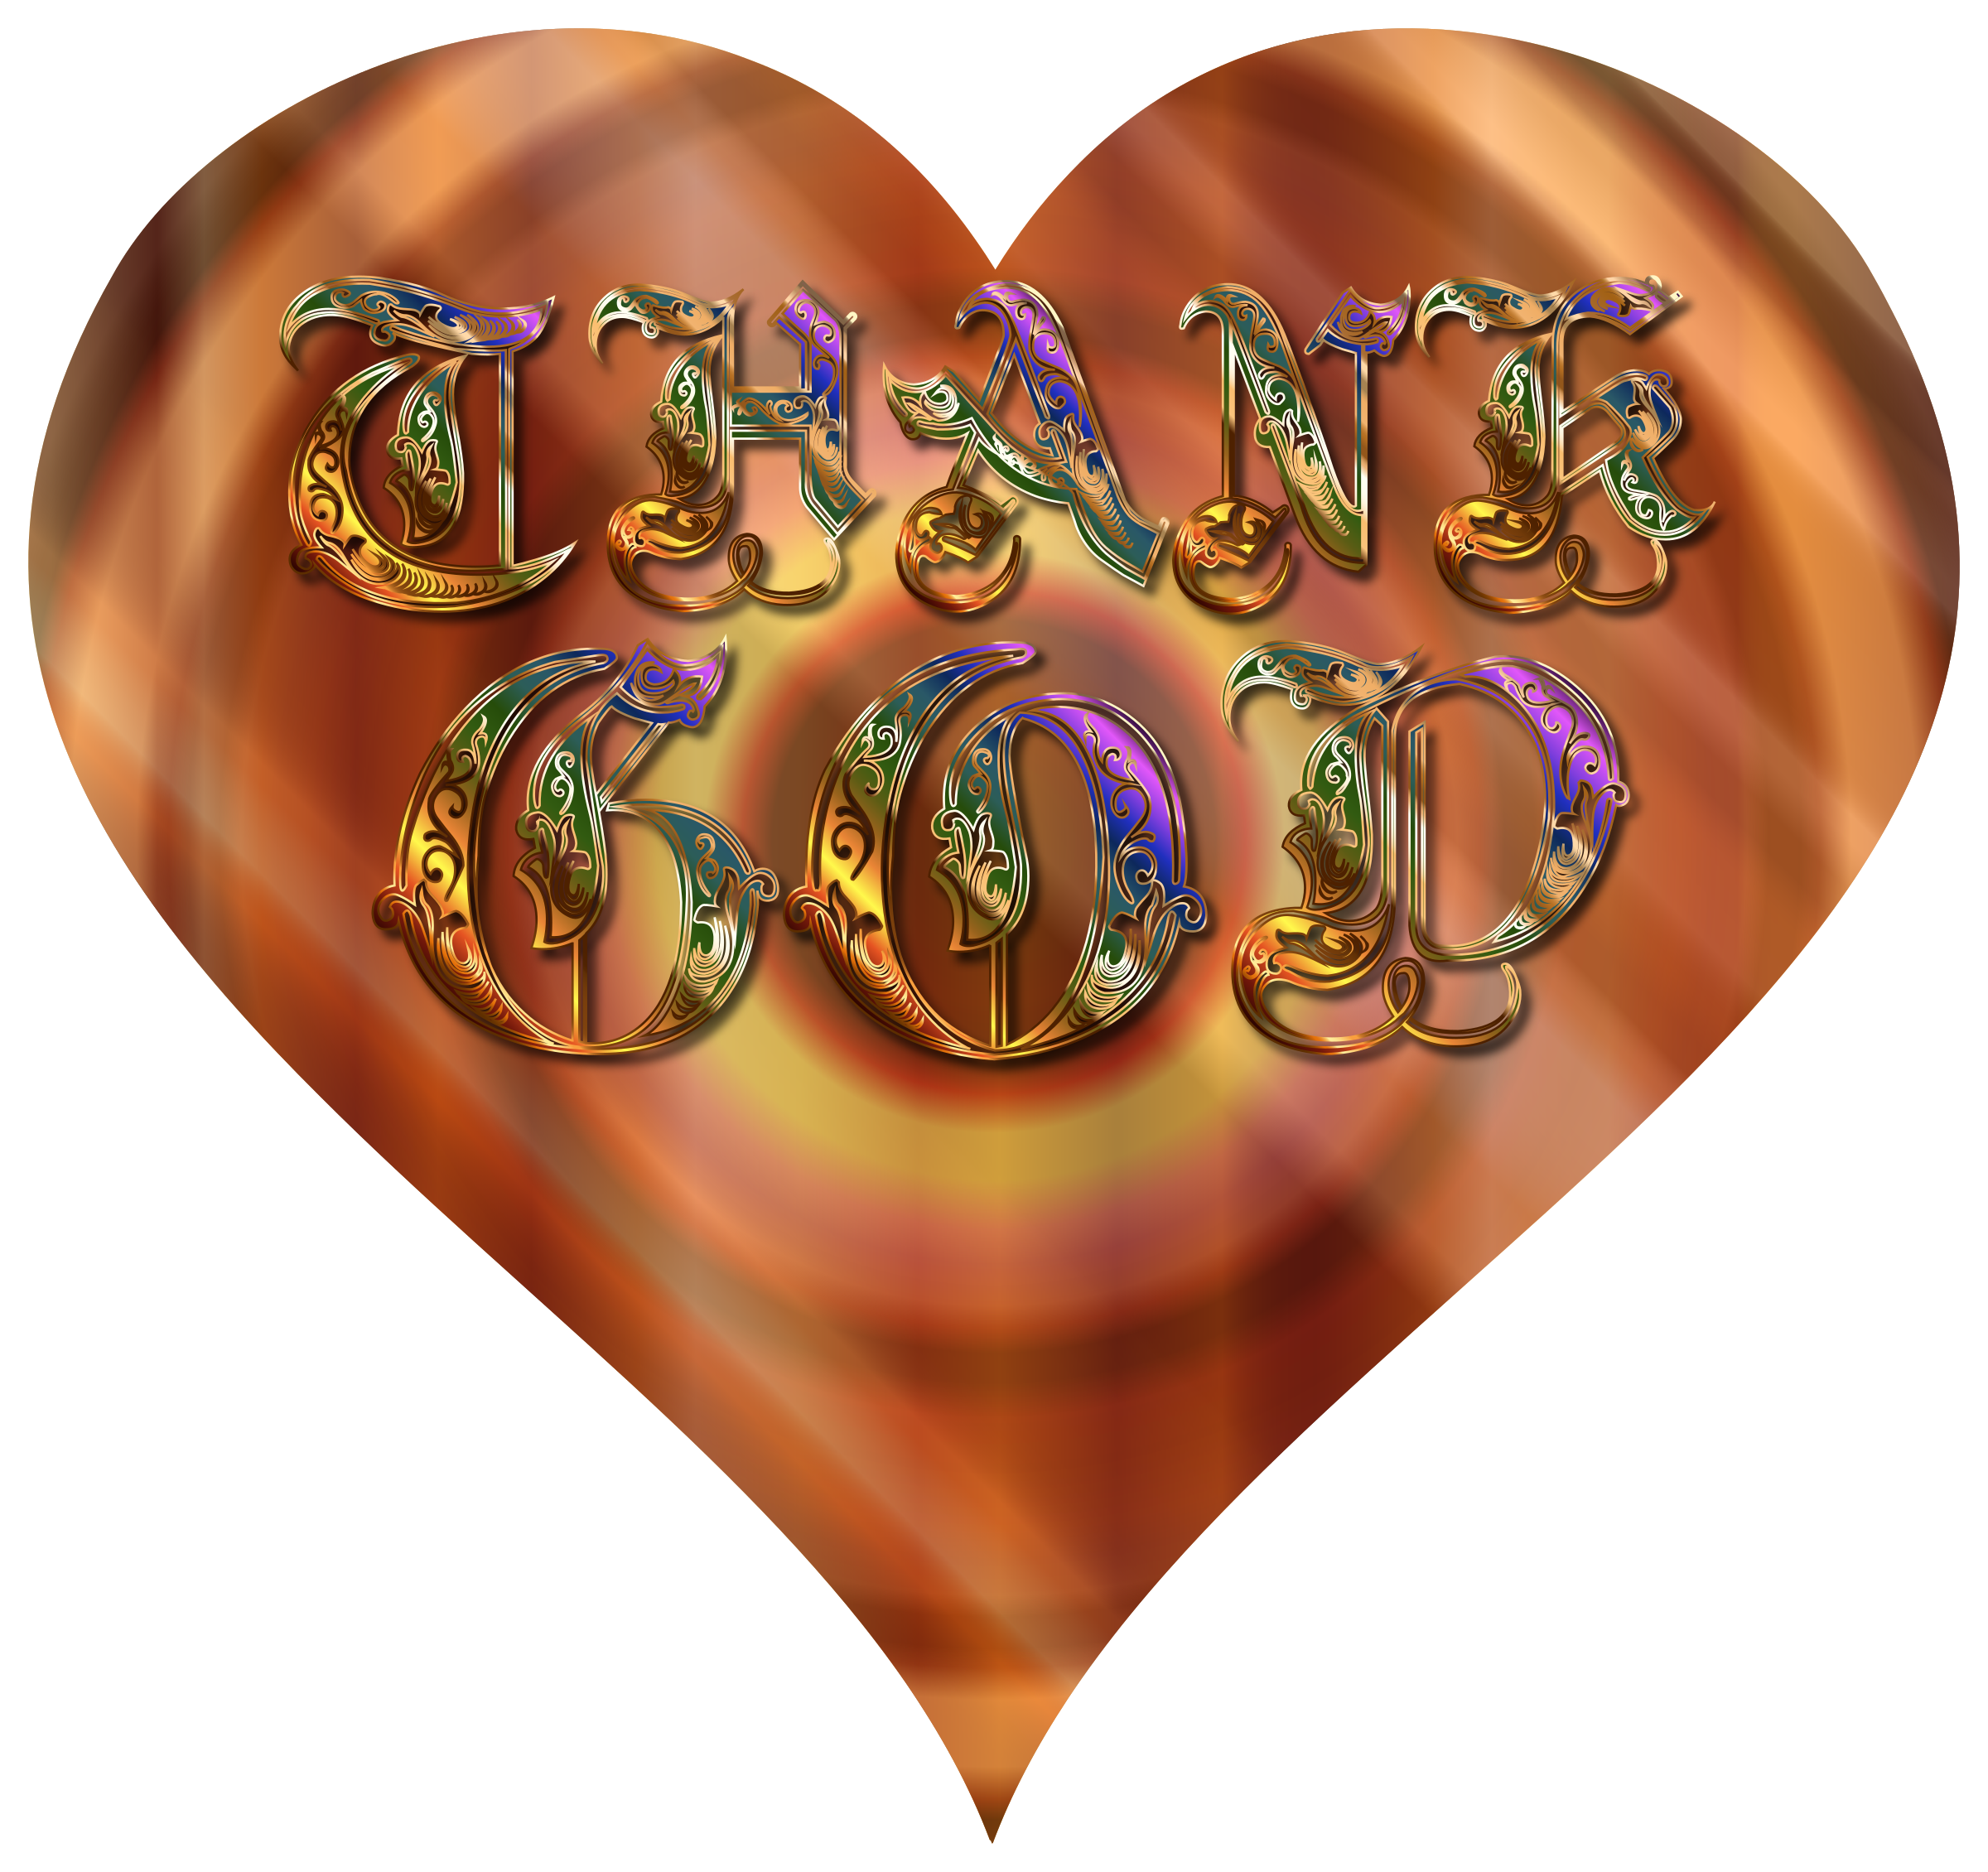 Transparent god png. Thank no background icons